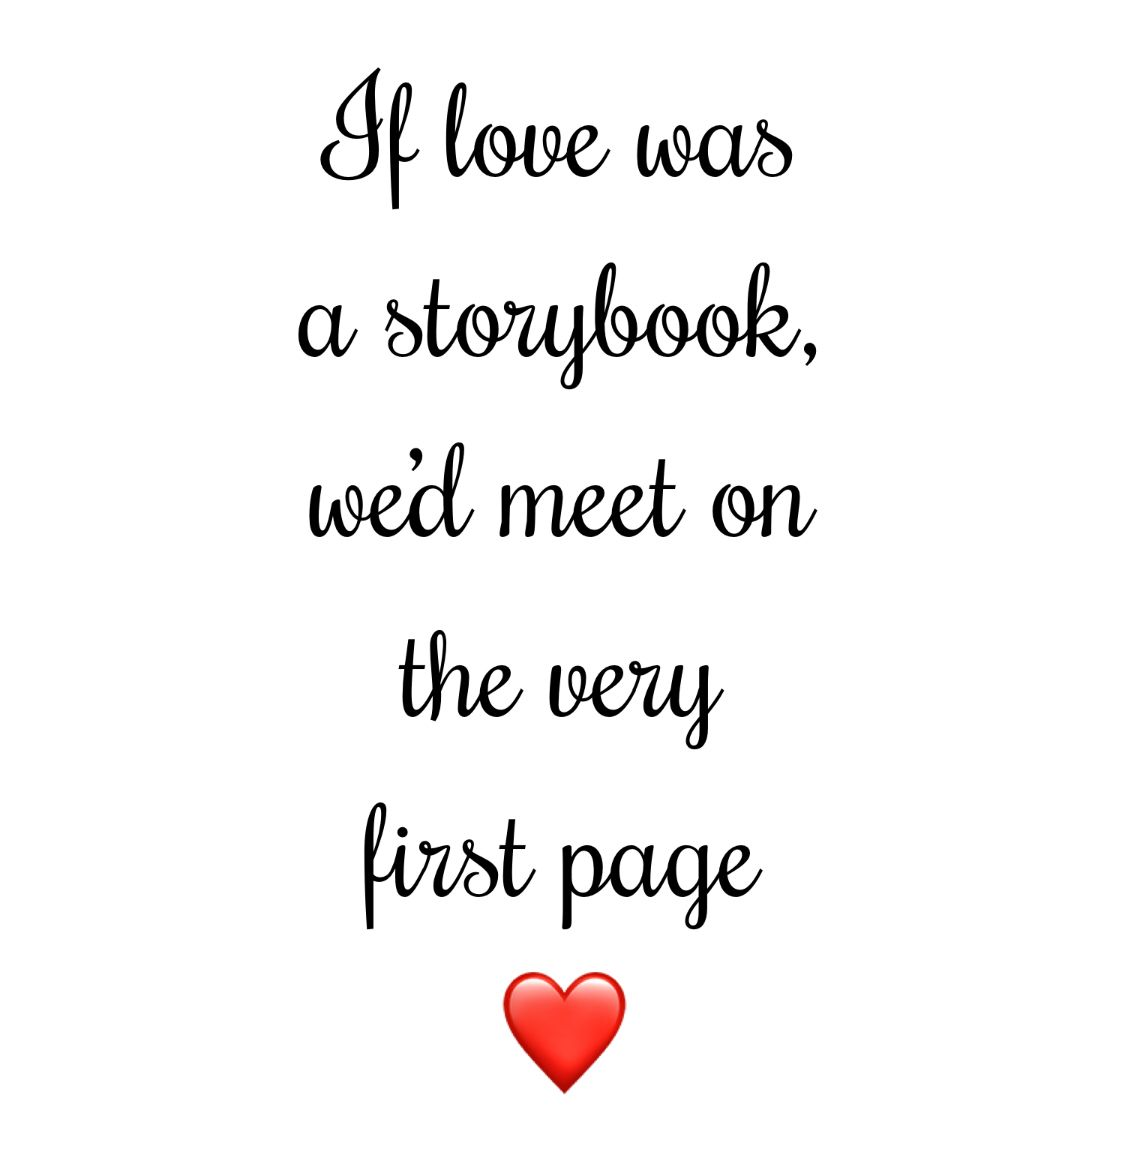 If love was a storybook wed meet on the first page